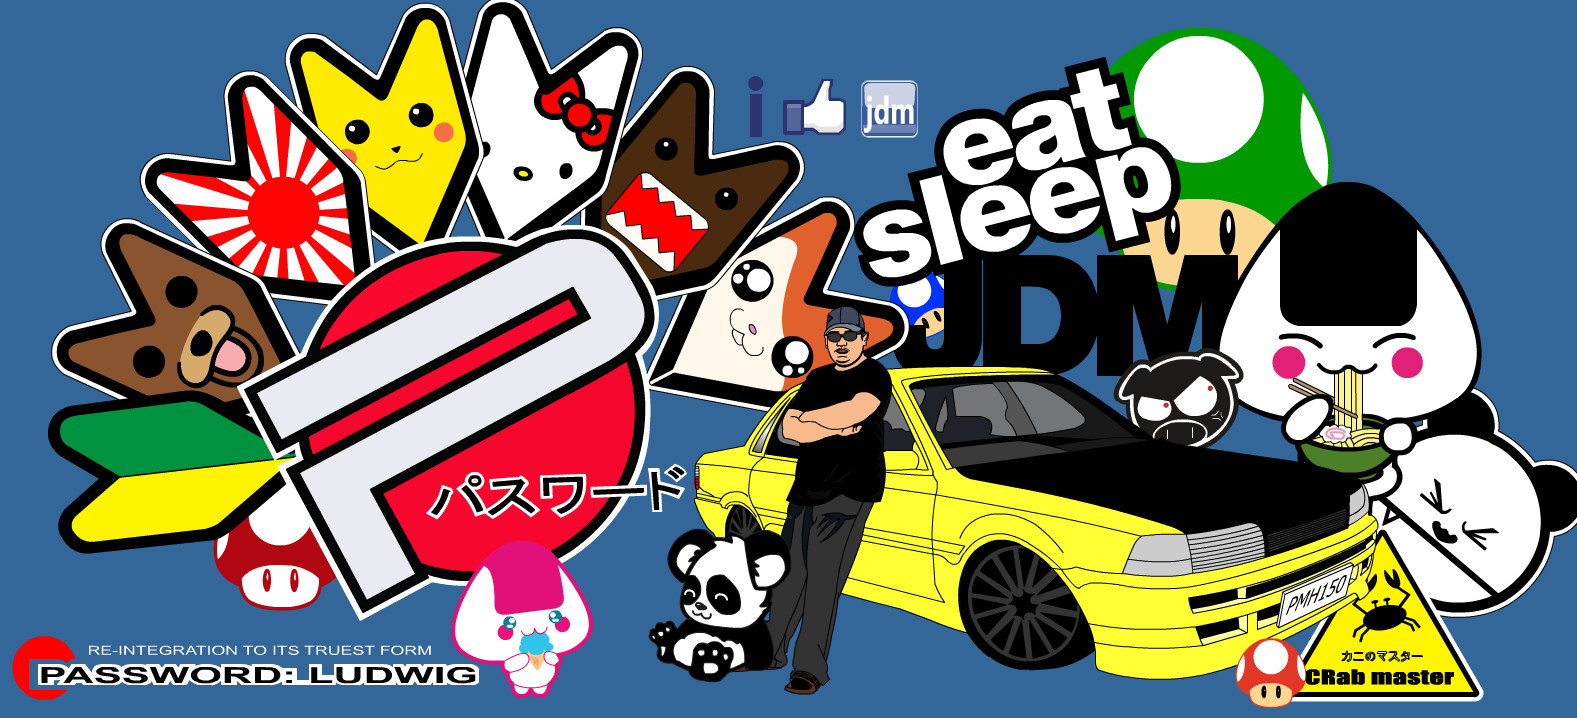 jdm sticker by michaelludwig